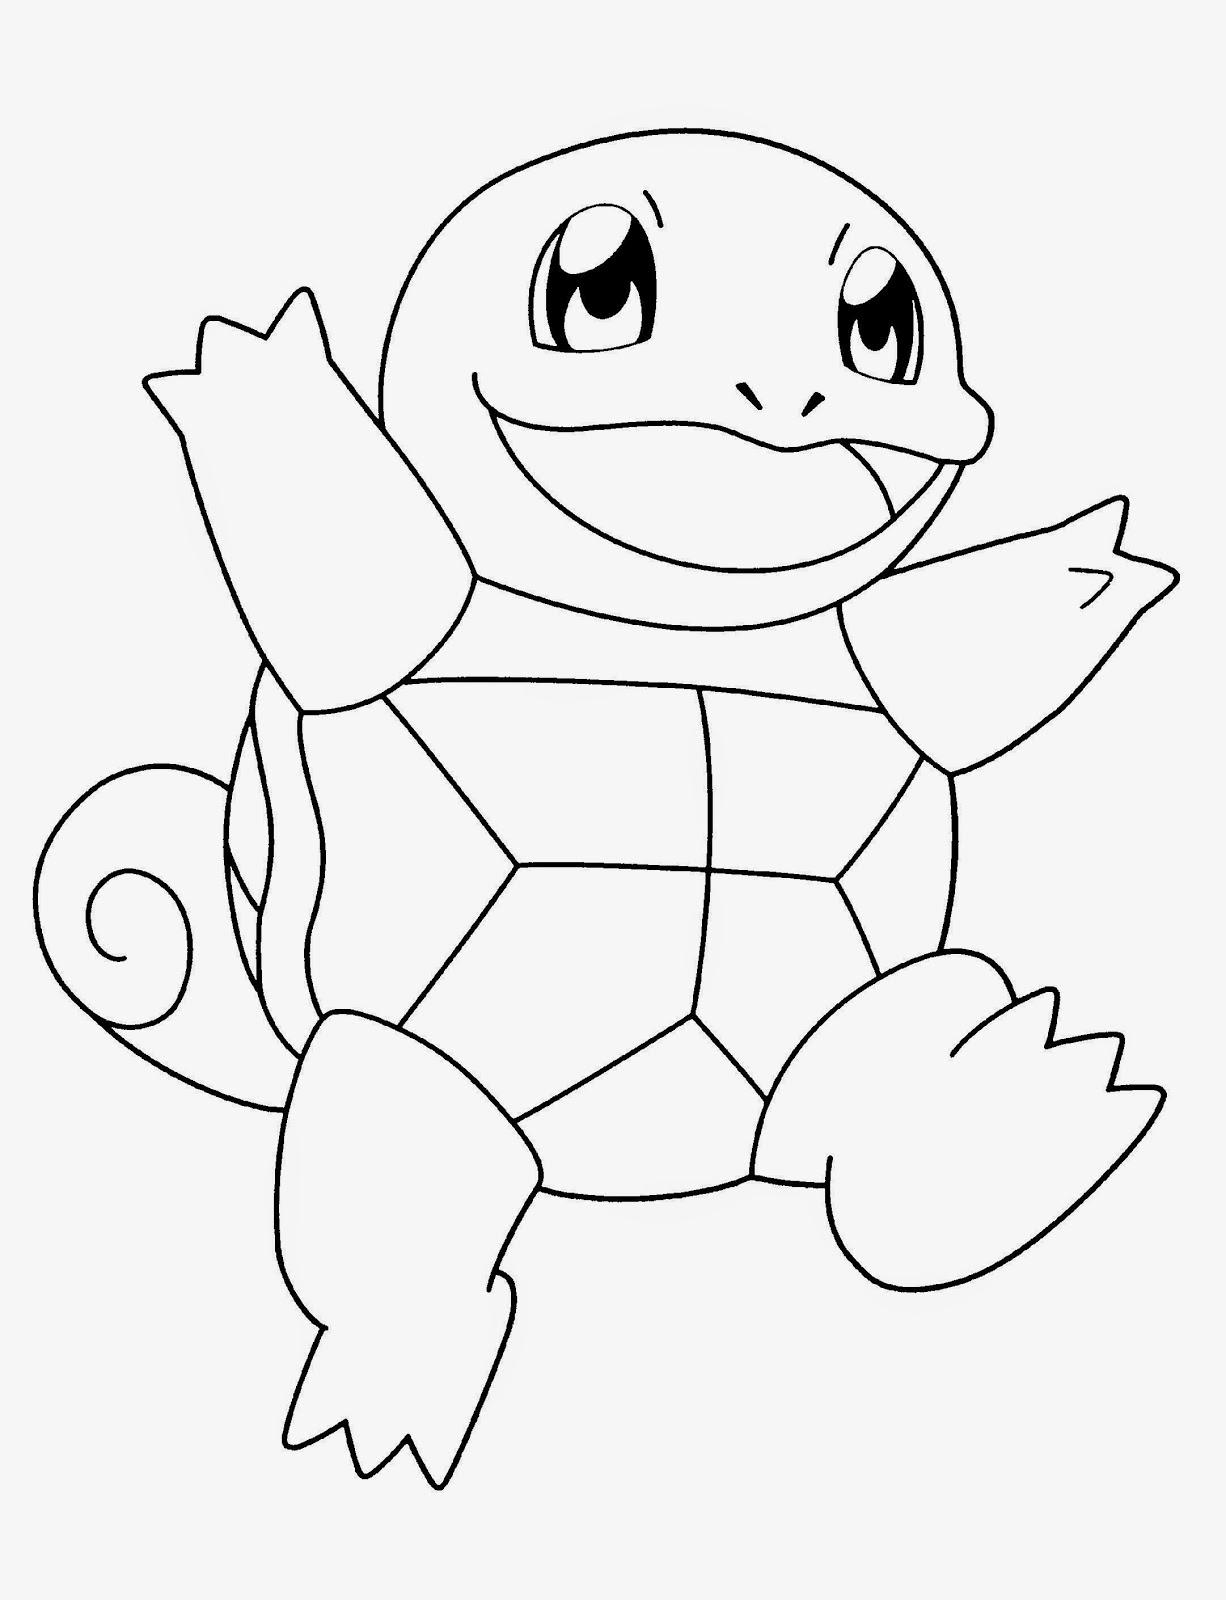 New Pokemon Coloring Pages Black White Page 1 Simple Coloring Pages